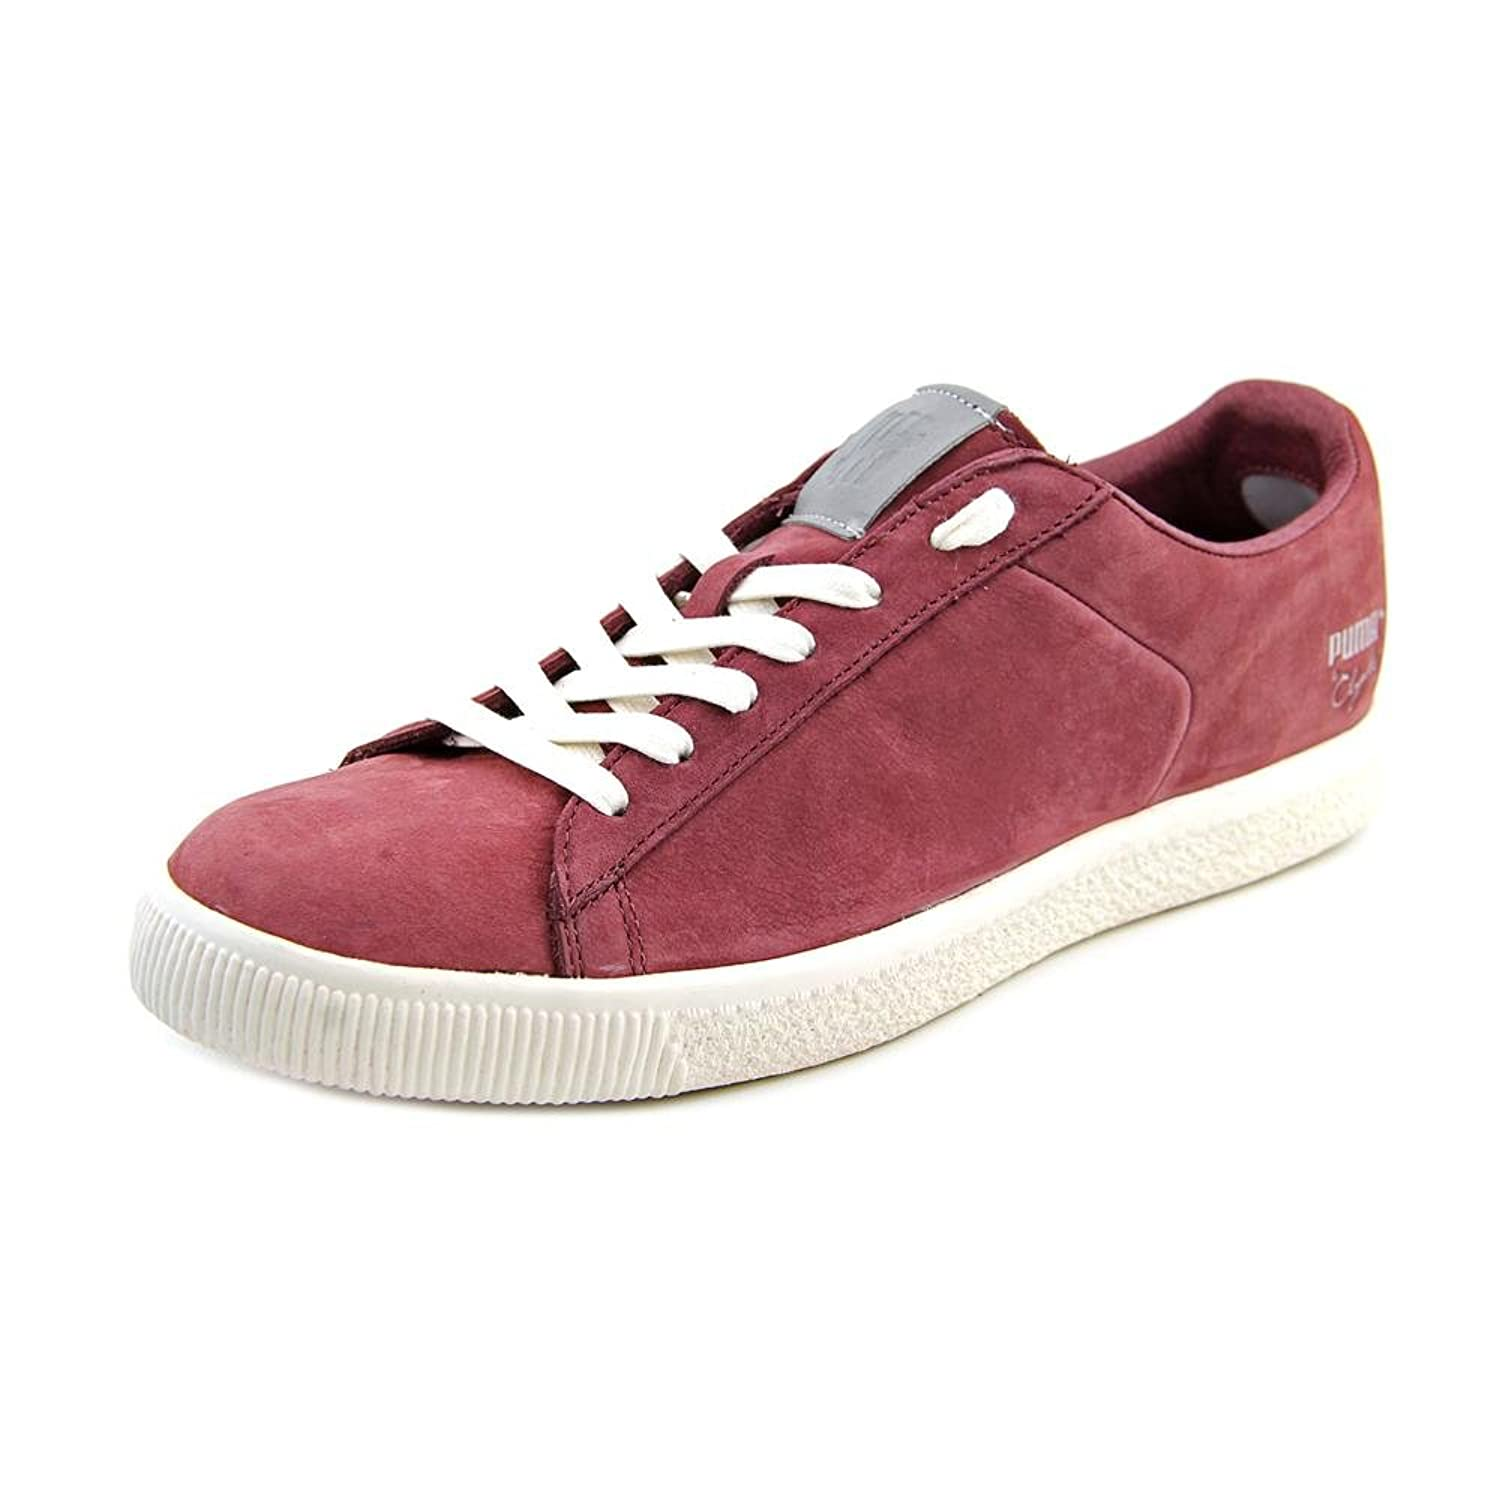 buy online a3bb6 8764f Clyde x Undefeated Luxe 2 in Burgundy (Stripe off Collection ...